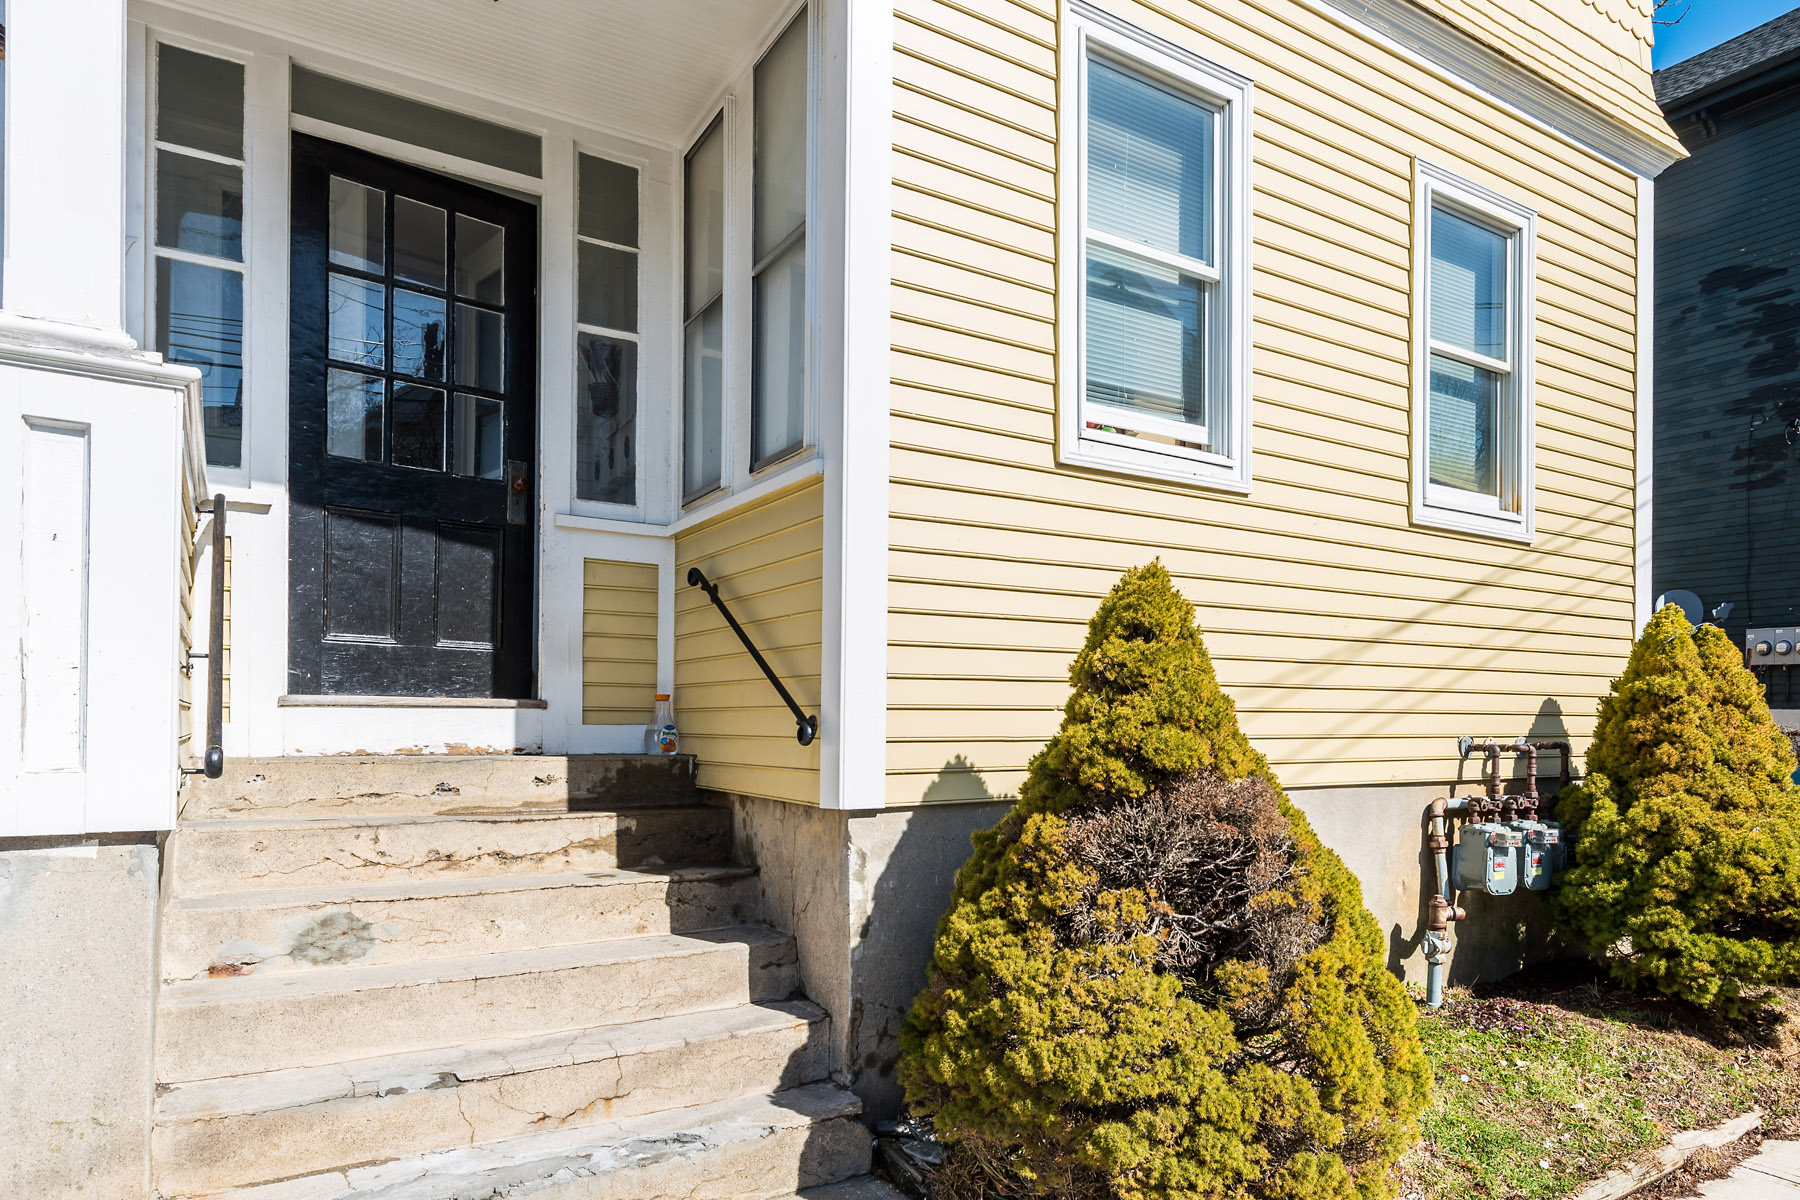 Apartment for Sale at 17 Newport Av, Newport, RI Newport, Rhode Island, 02840 United States